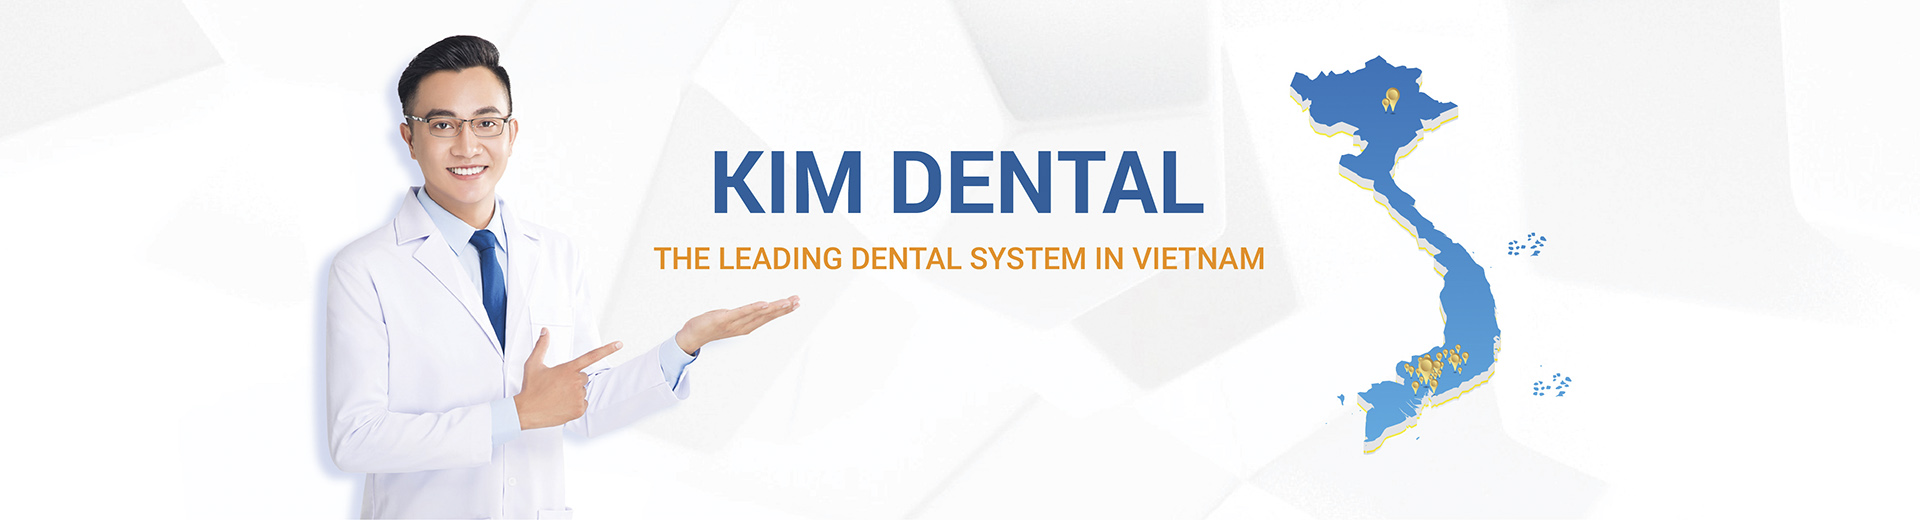 Kim Dental – The leading dental system in Vietnam